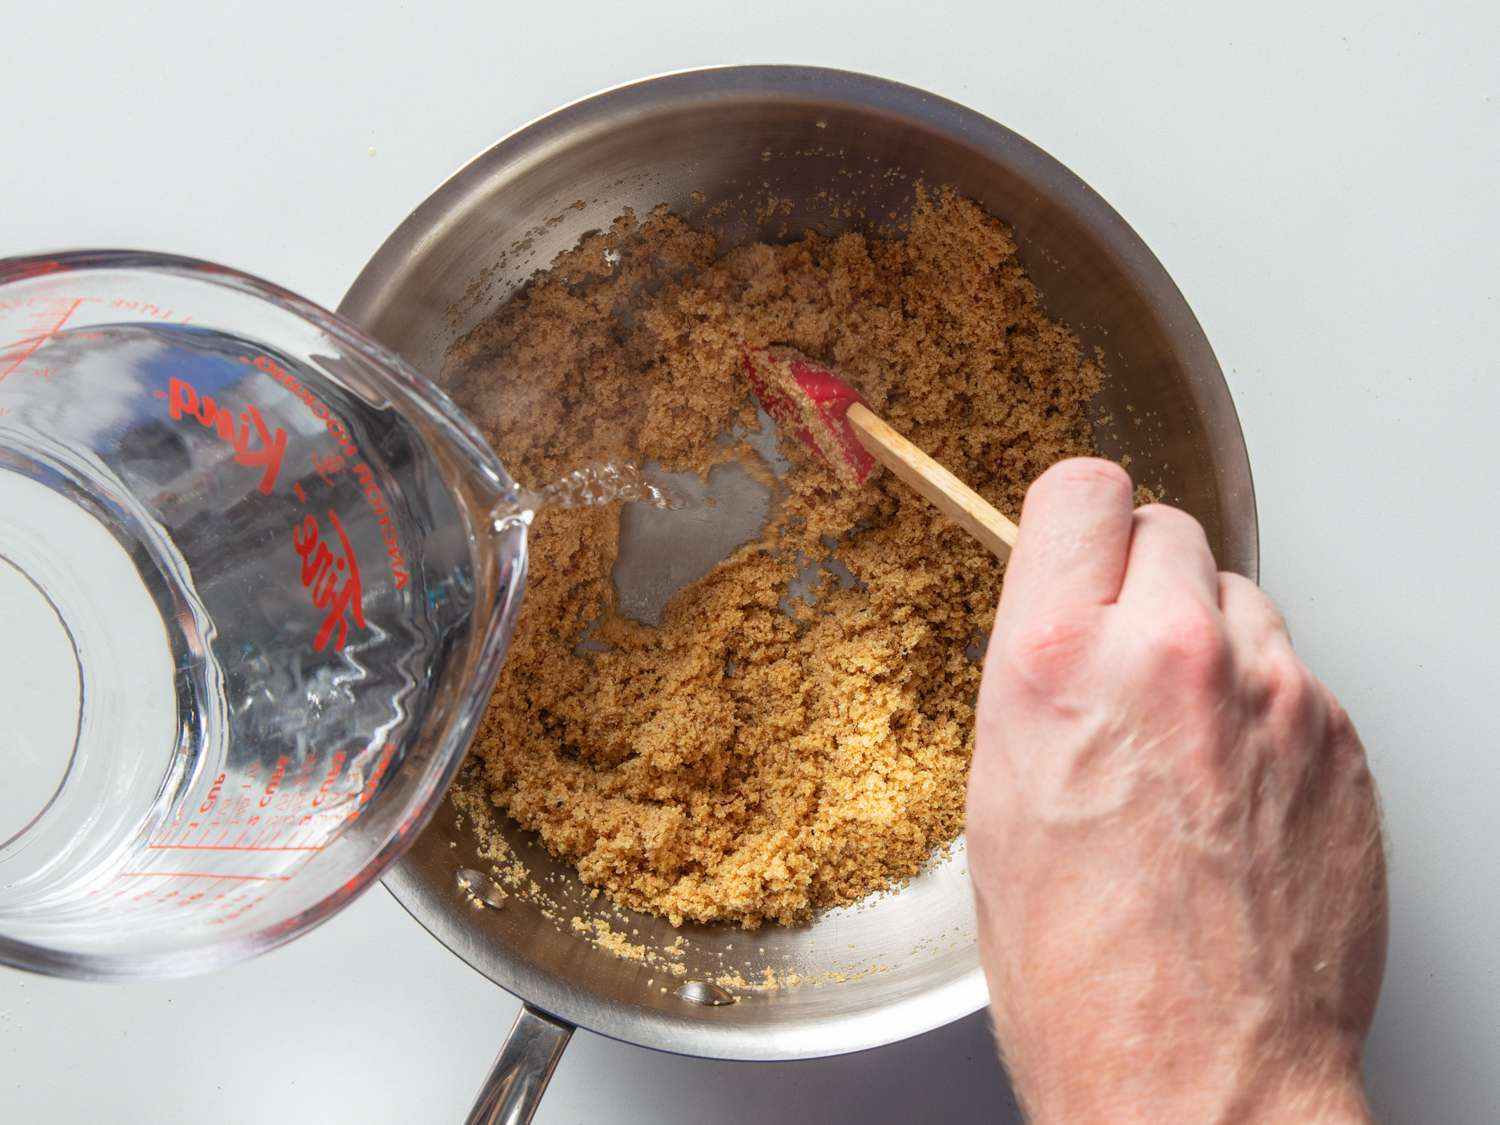 Boiling water being poured into a saucepan containing a mixture of semolina and ghee